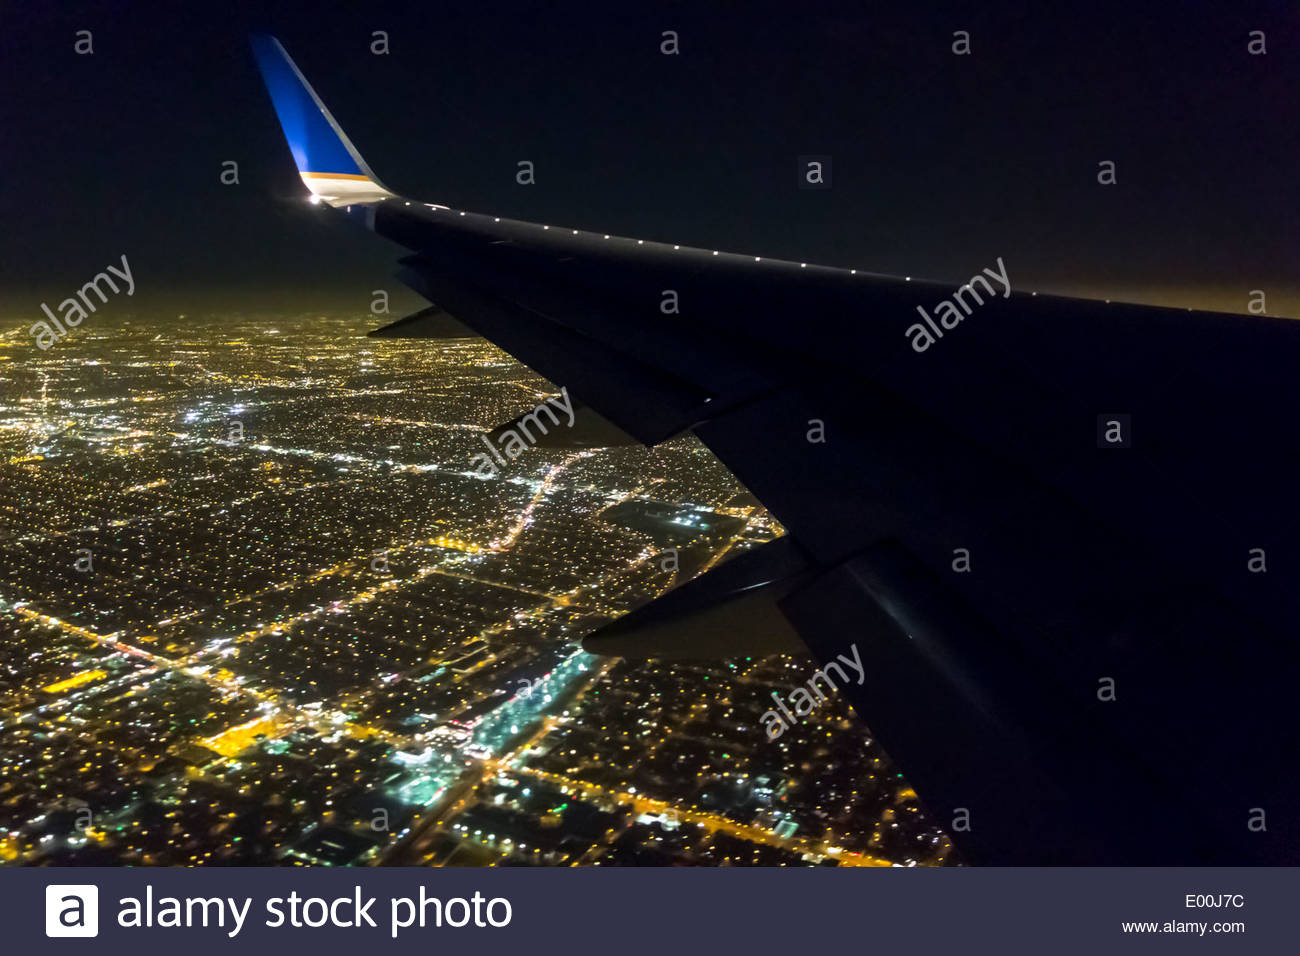 Passenger aircraft wing over Los Angeles approaching LAX at night Los Angeles California USAStock Photo